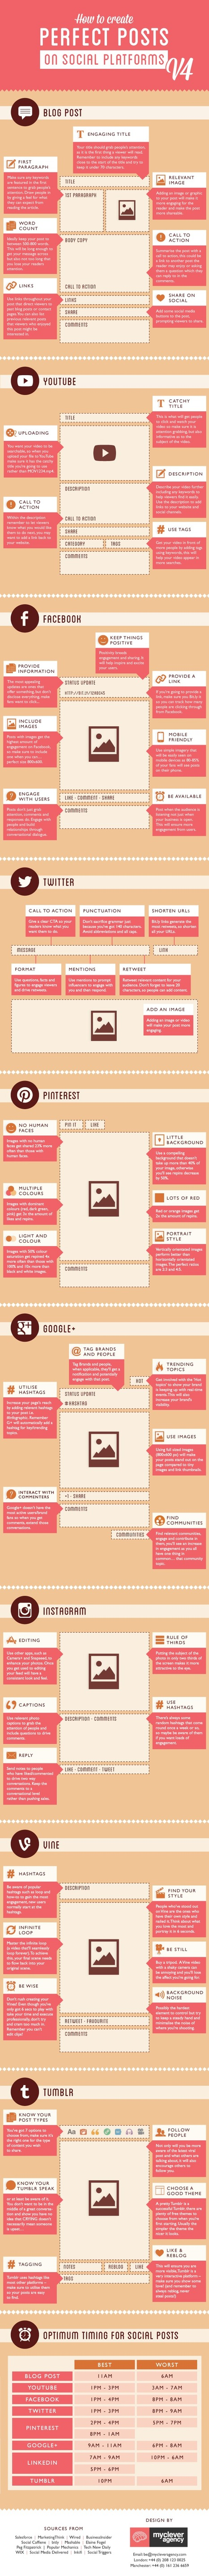 The Art of Creating Perfect Social Media Posts - infographic | Social Media | Scoop.it